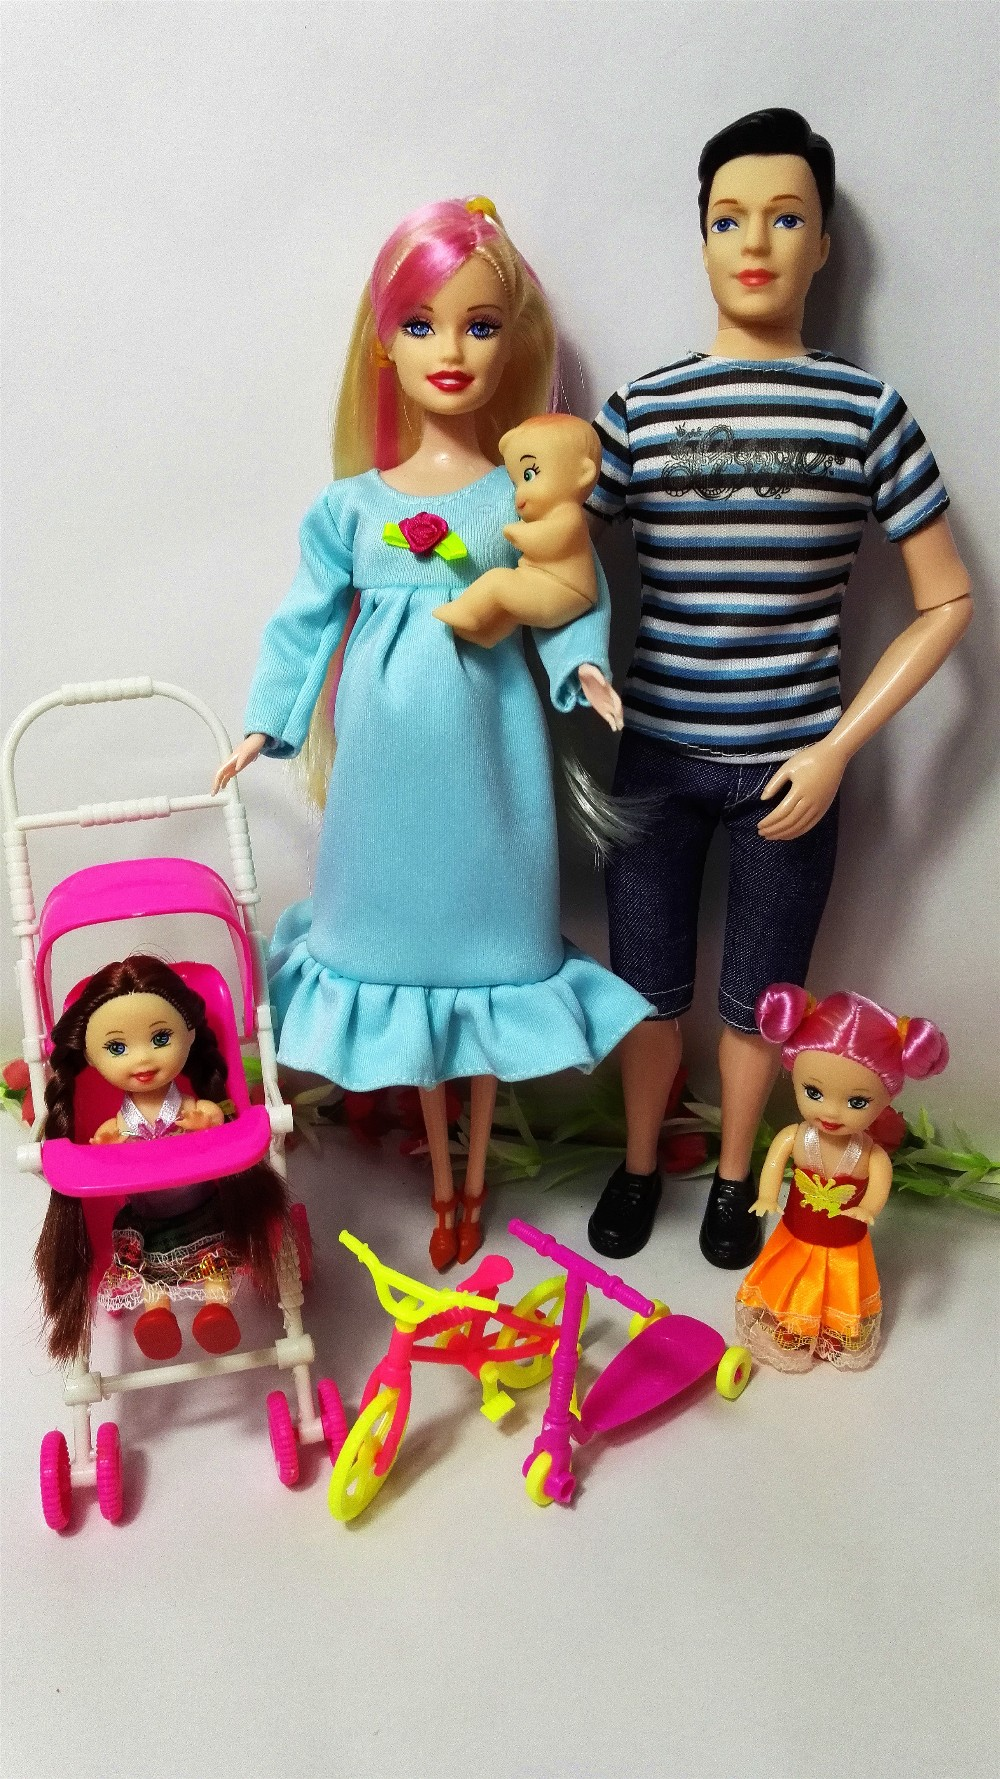 Toys Family 5 People Dolls Suits 1 Mom /1 Dad /2 Little Kelly Girl /1 Baby Son/1 Baby Carriage Real Pregnant Doll Gifts,YF-99